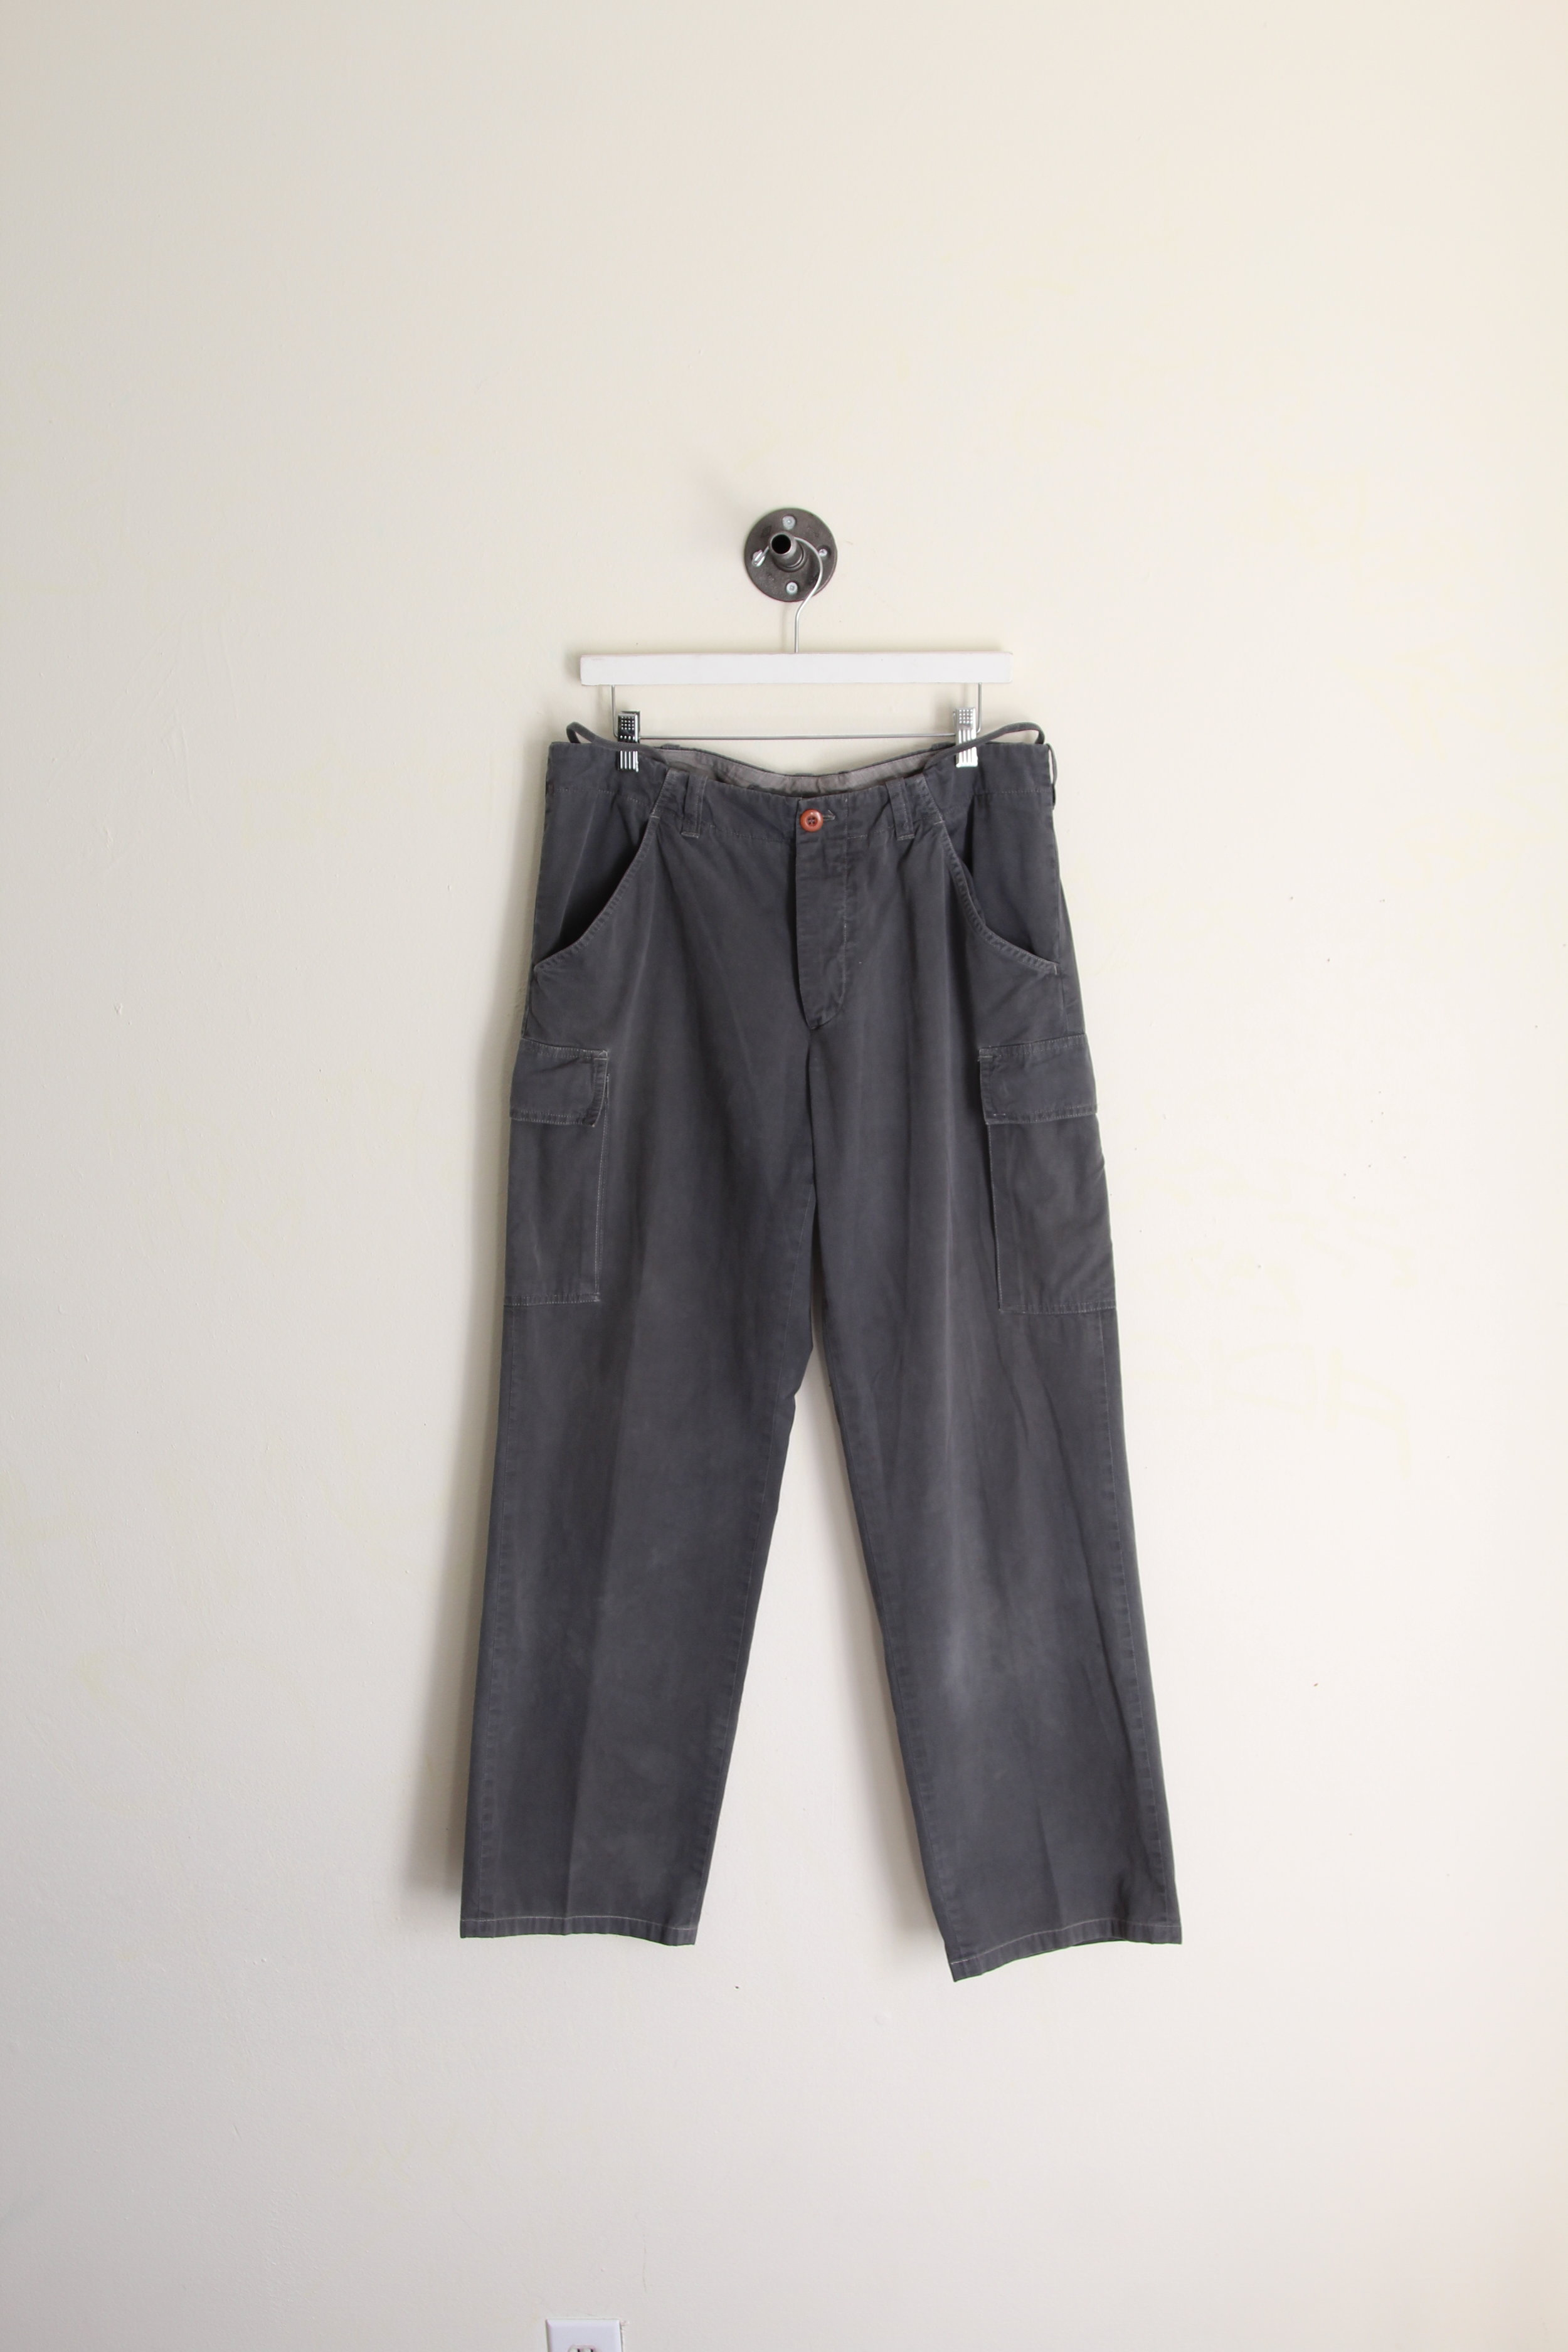 Helmut Lang AW 1998 Cargo Trousers